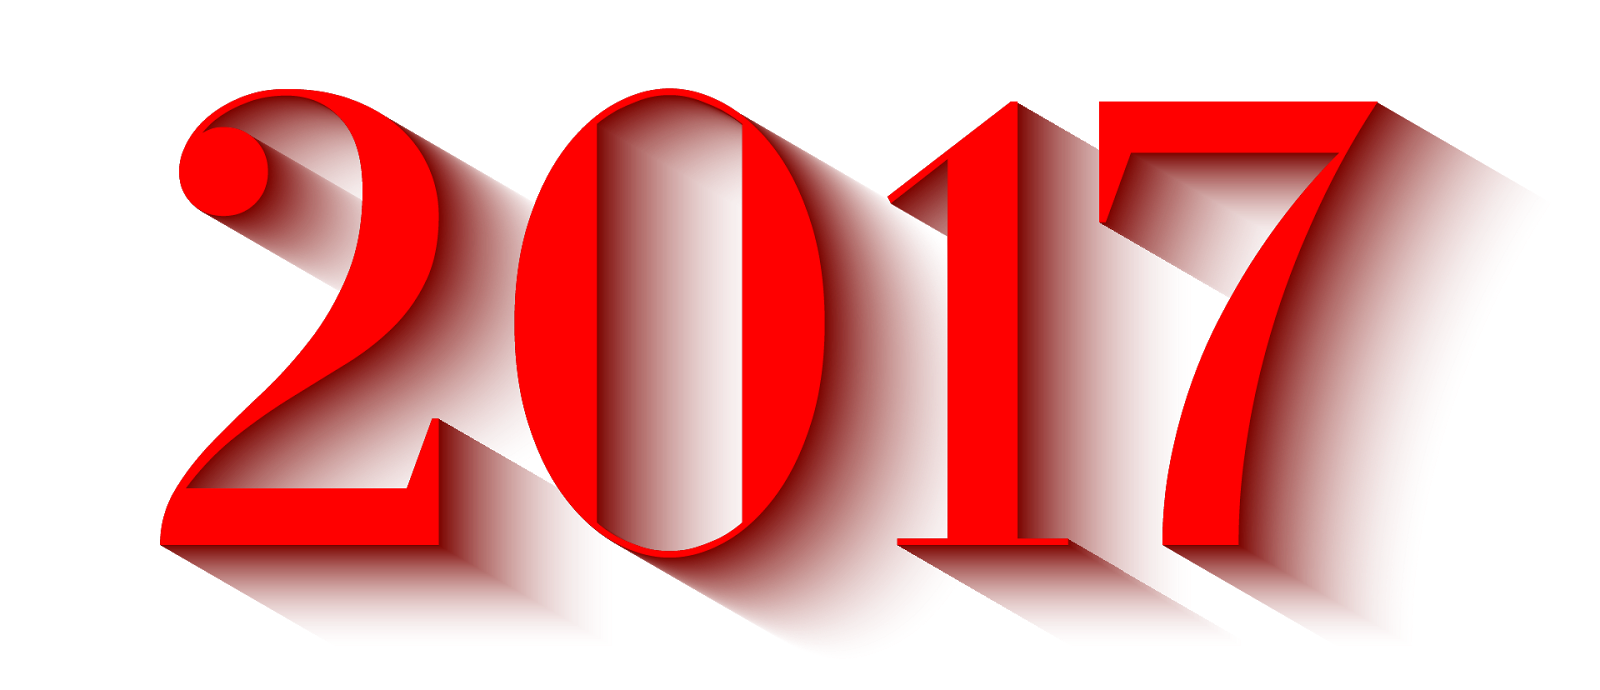 New year 2016 png. Happy top quotes for